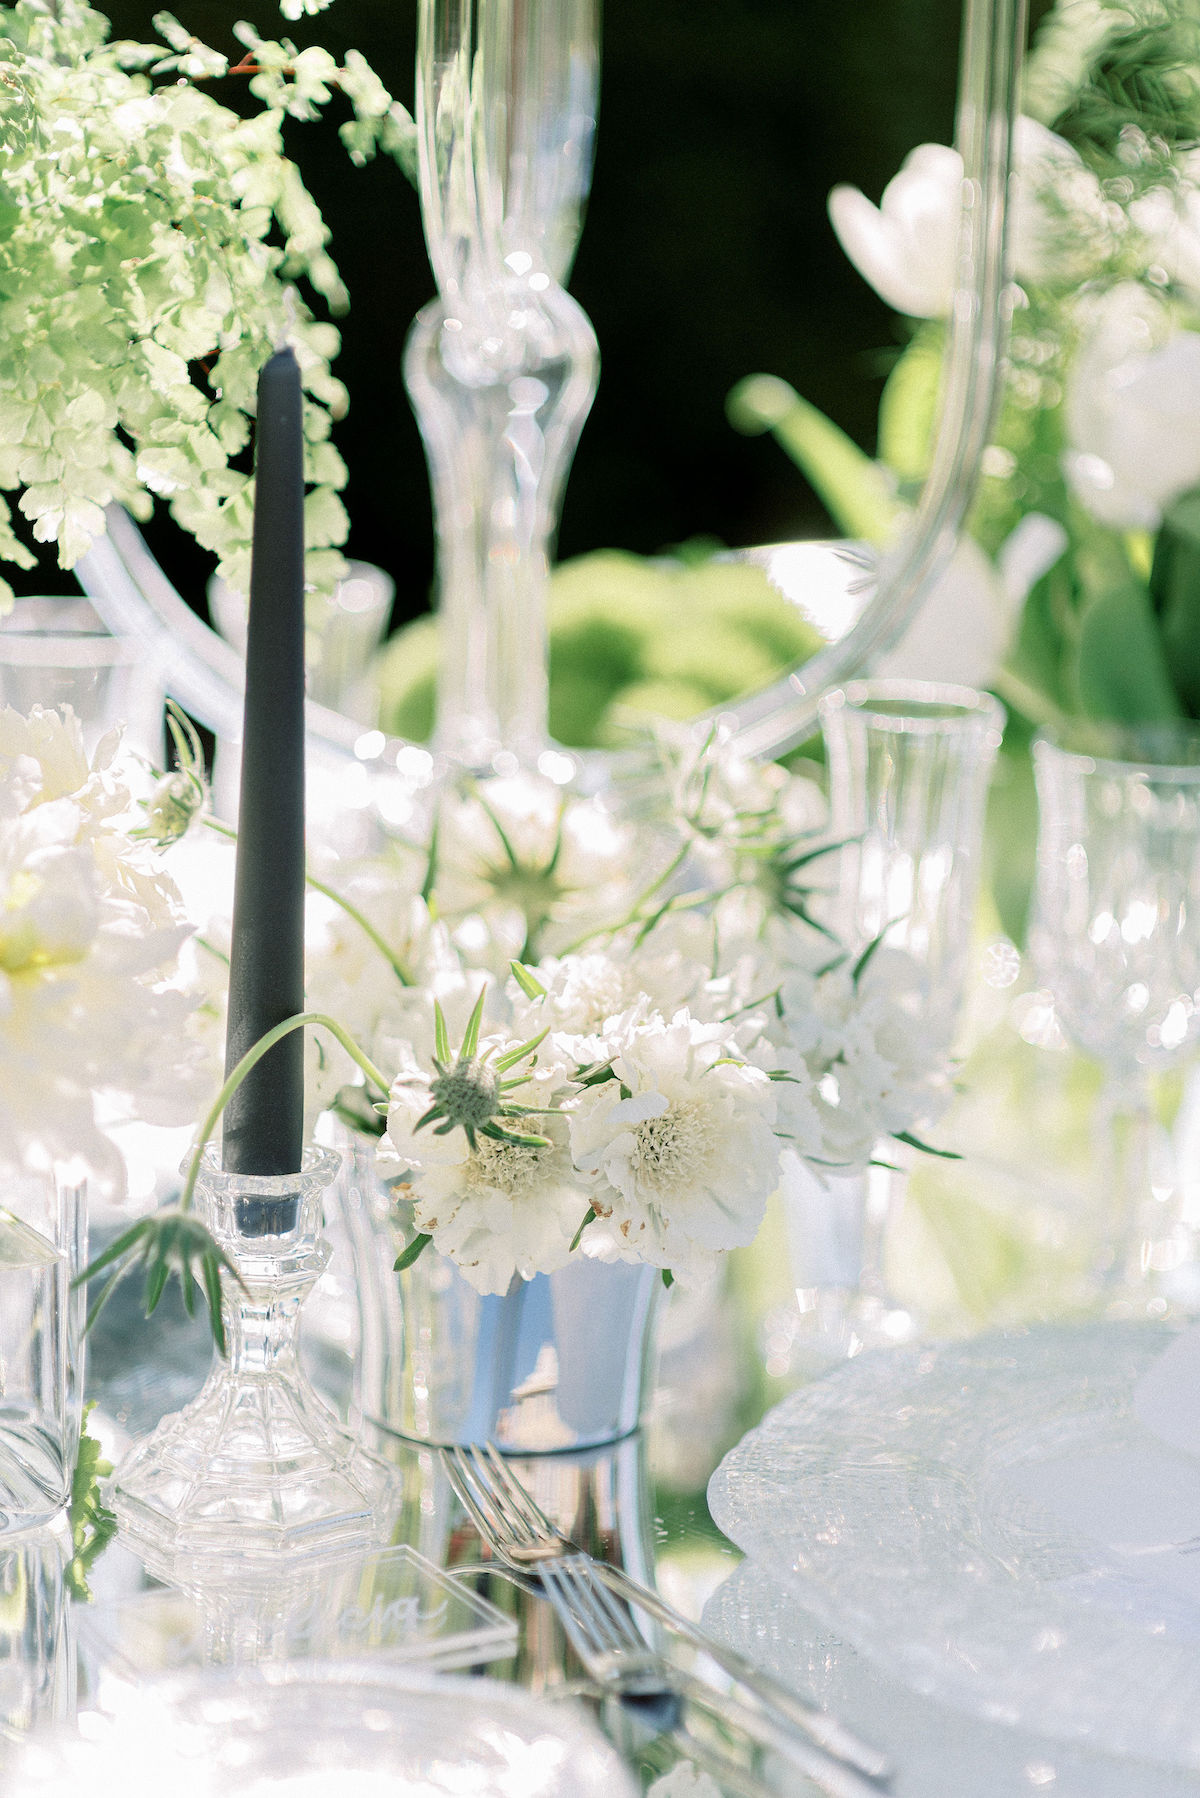 Luxury wedding table decor with mirror and crystal details 4